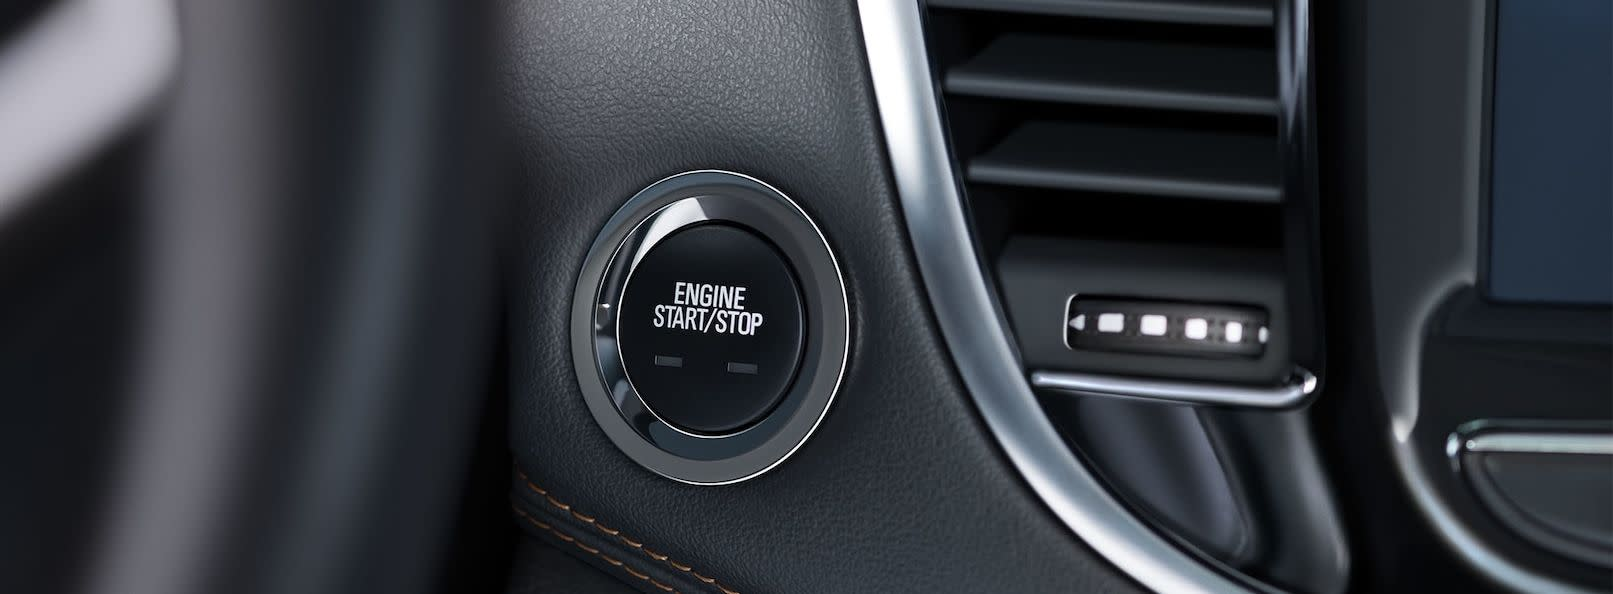 2019 Trax Push Button Start